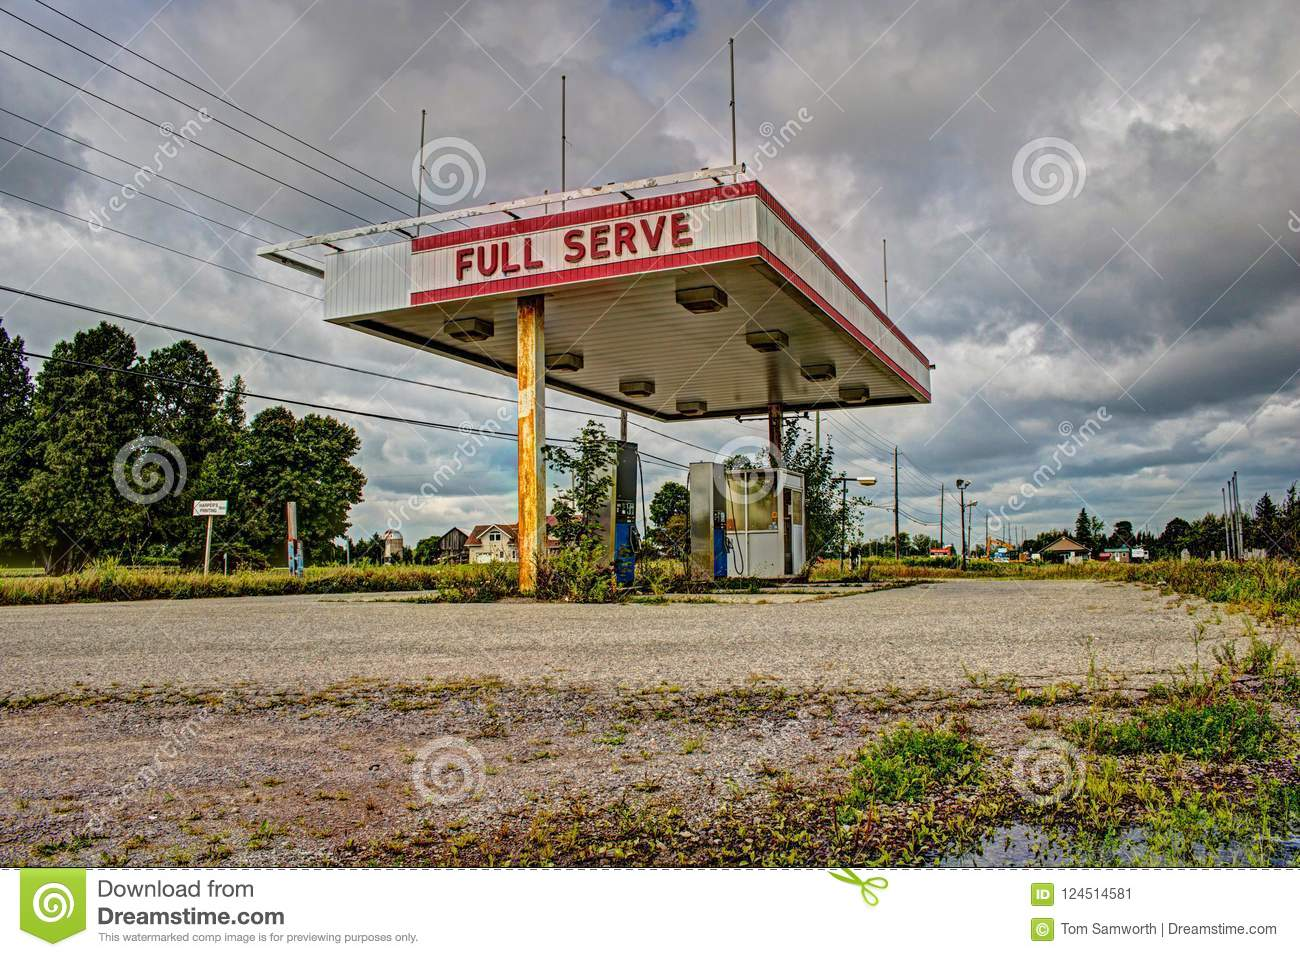 377 Gas Station Canada Photos Free Royalty Free Stock Photos From Dreamstime